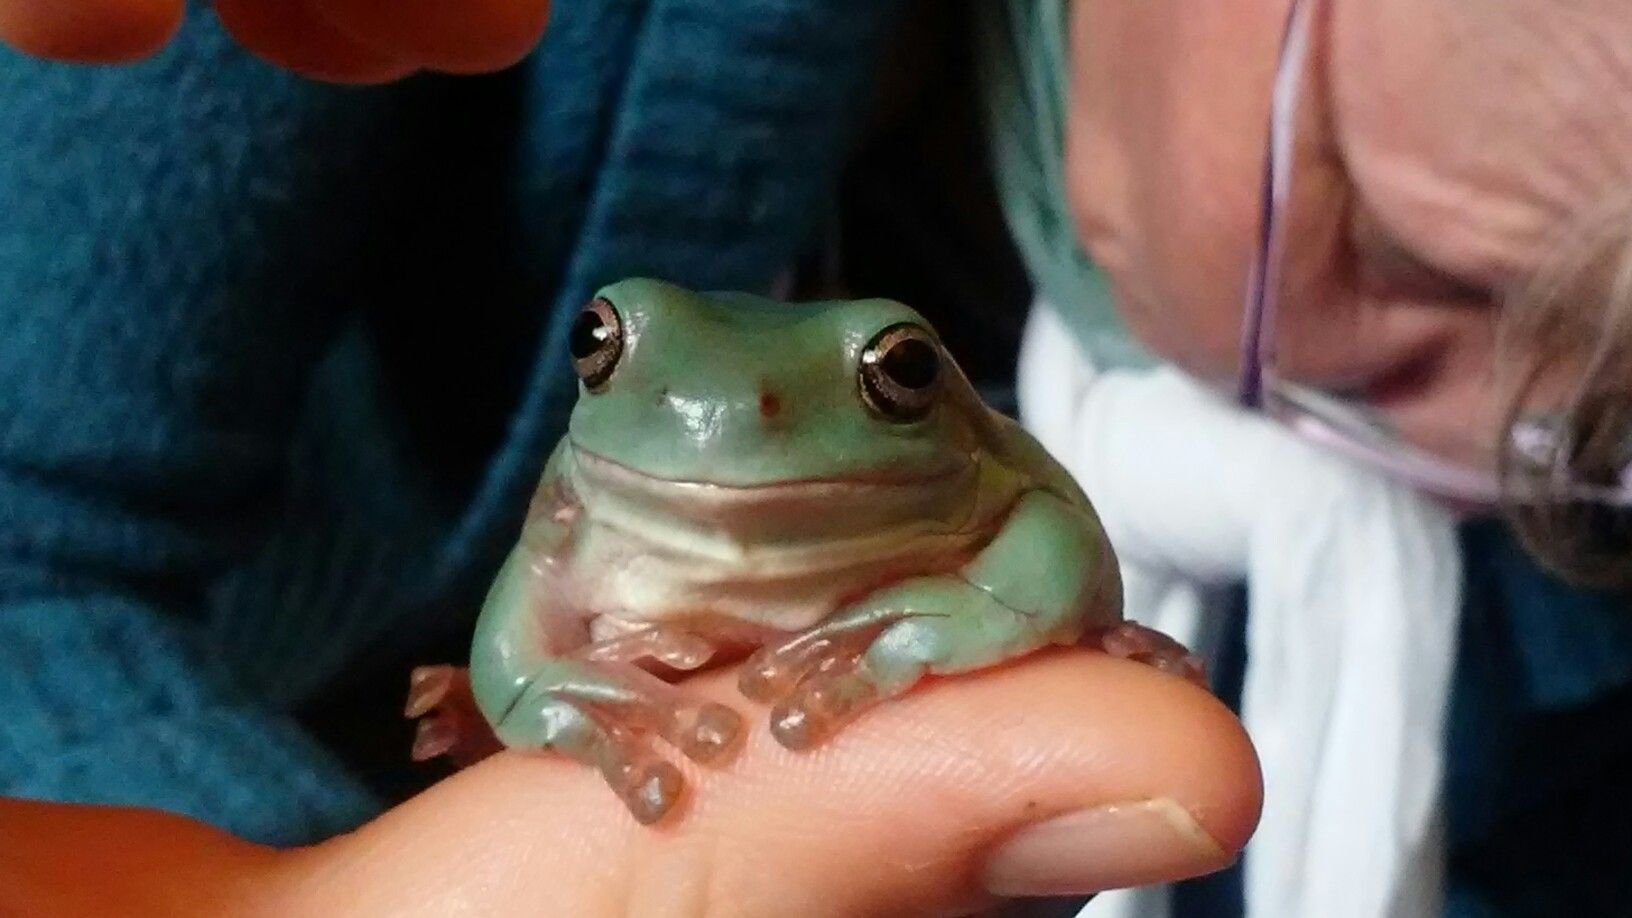 This Is This Is A Whites Dumpy Tree Frog Frogs Pinterest - Frog wearing two snails as hat becomes star of hilarious photoshop battle